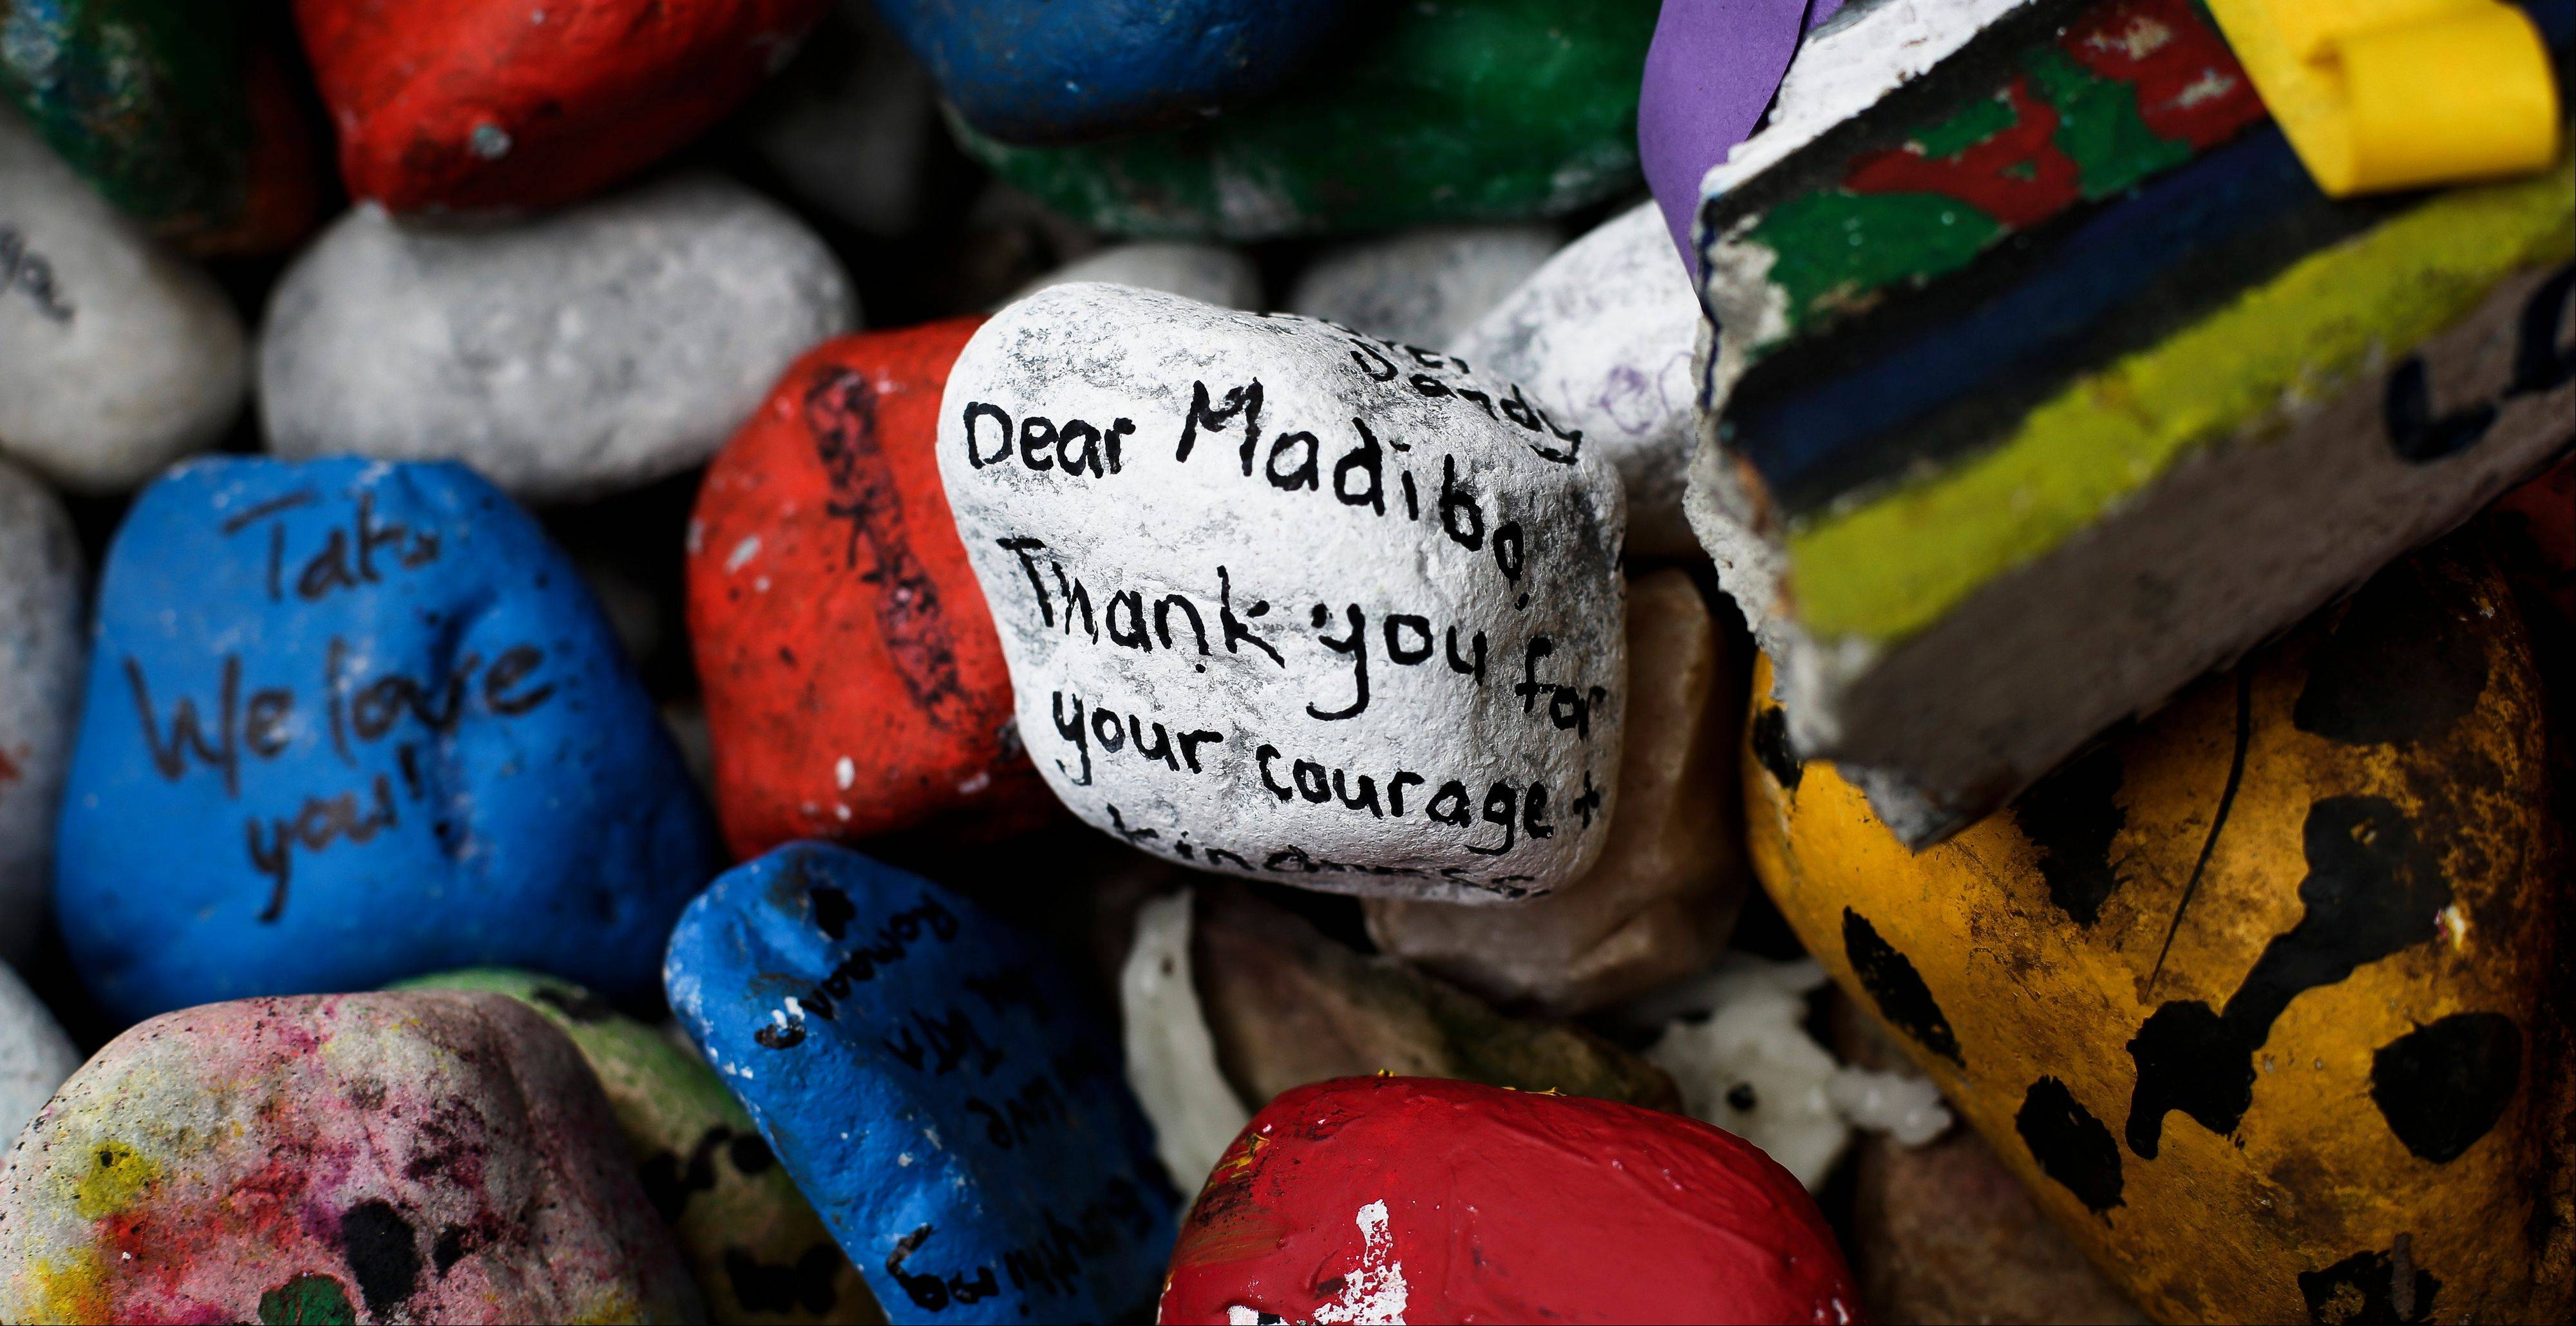 Stones with well wishes in support of former South African President Nelson Mandela lay in front of his house in Johannesburg, South Africa, Friday, July 5, 2013. Mandela, who was hospitalized on June 8, remains in critical but stable condition according to the office of President Jacob Zuma, who visited the anti-apartheid leader on Thursday, and the president�s office also said doctors denied reports that 94-year-old Mandela is in a �vegetative state.�